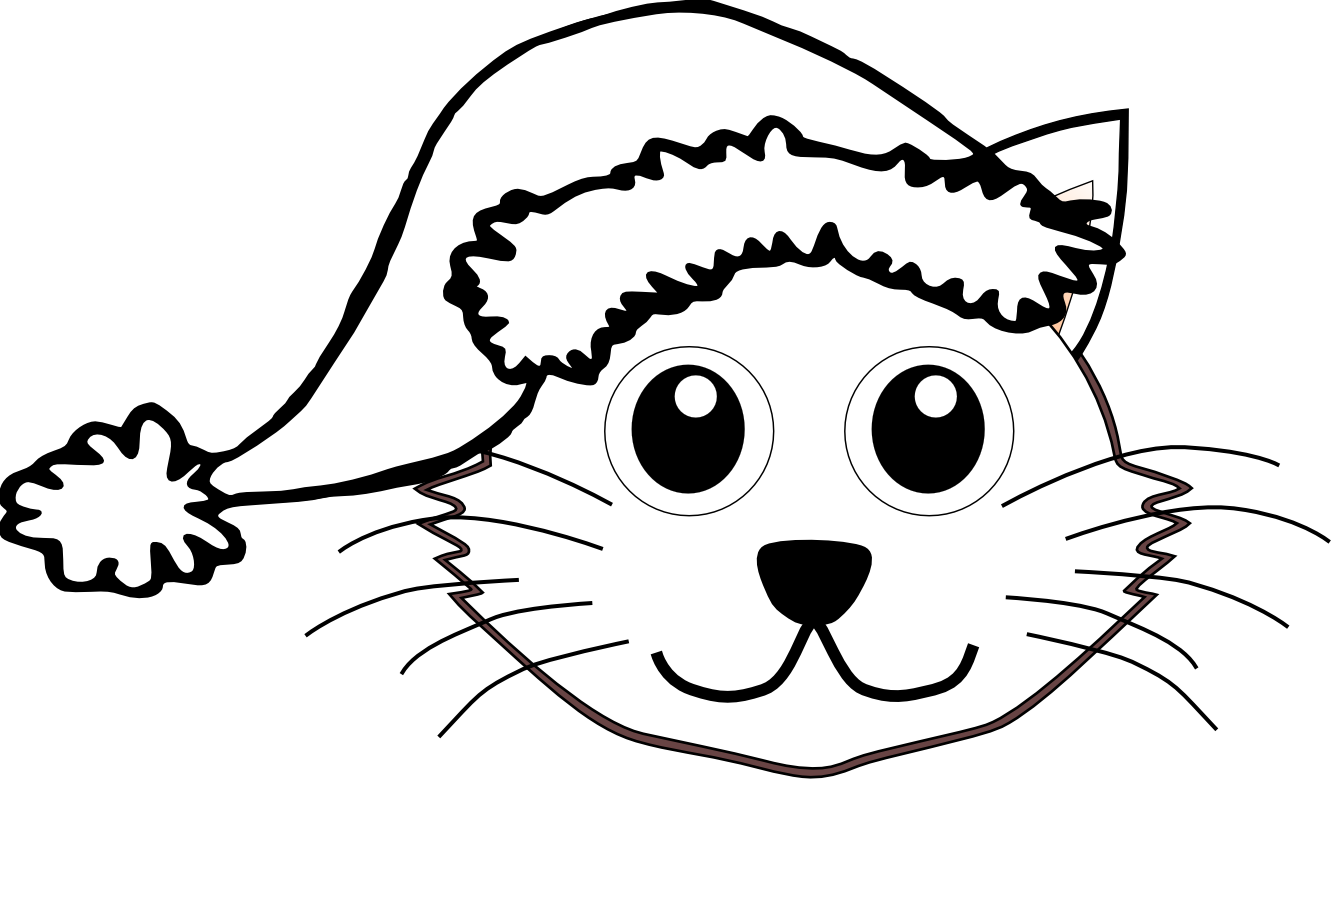 Cat Hat Coloring Pages Print Printable Sheet - Colorine.net | #9561 ...